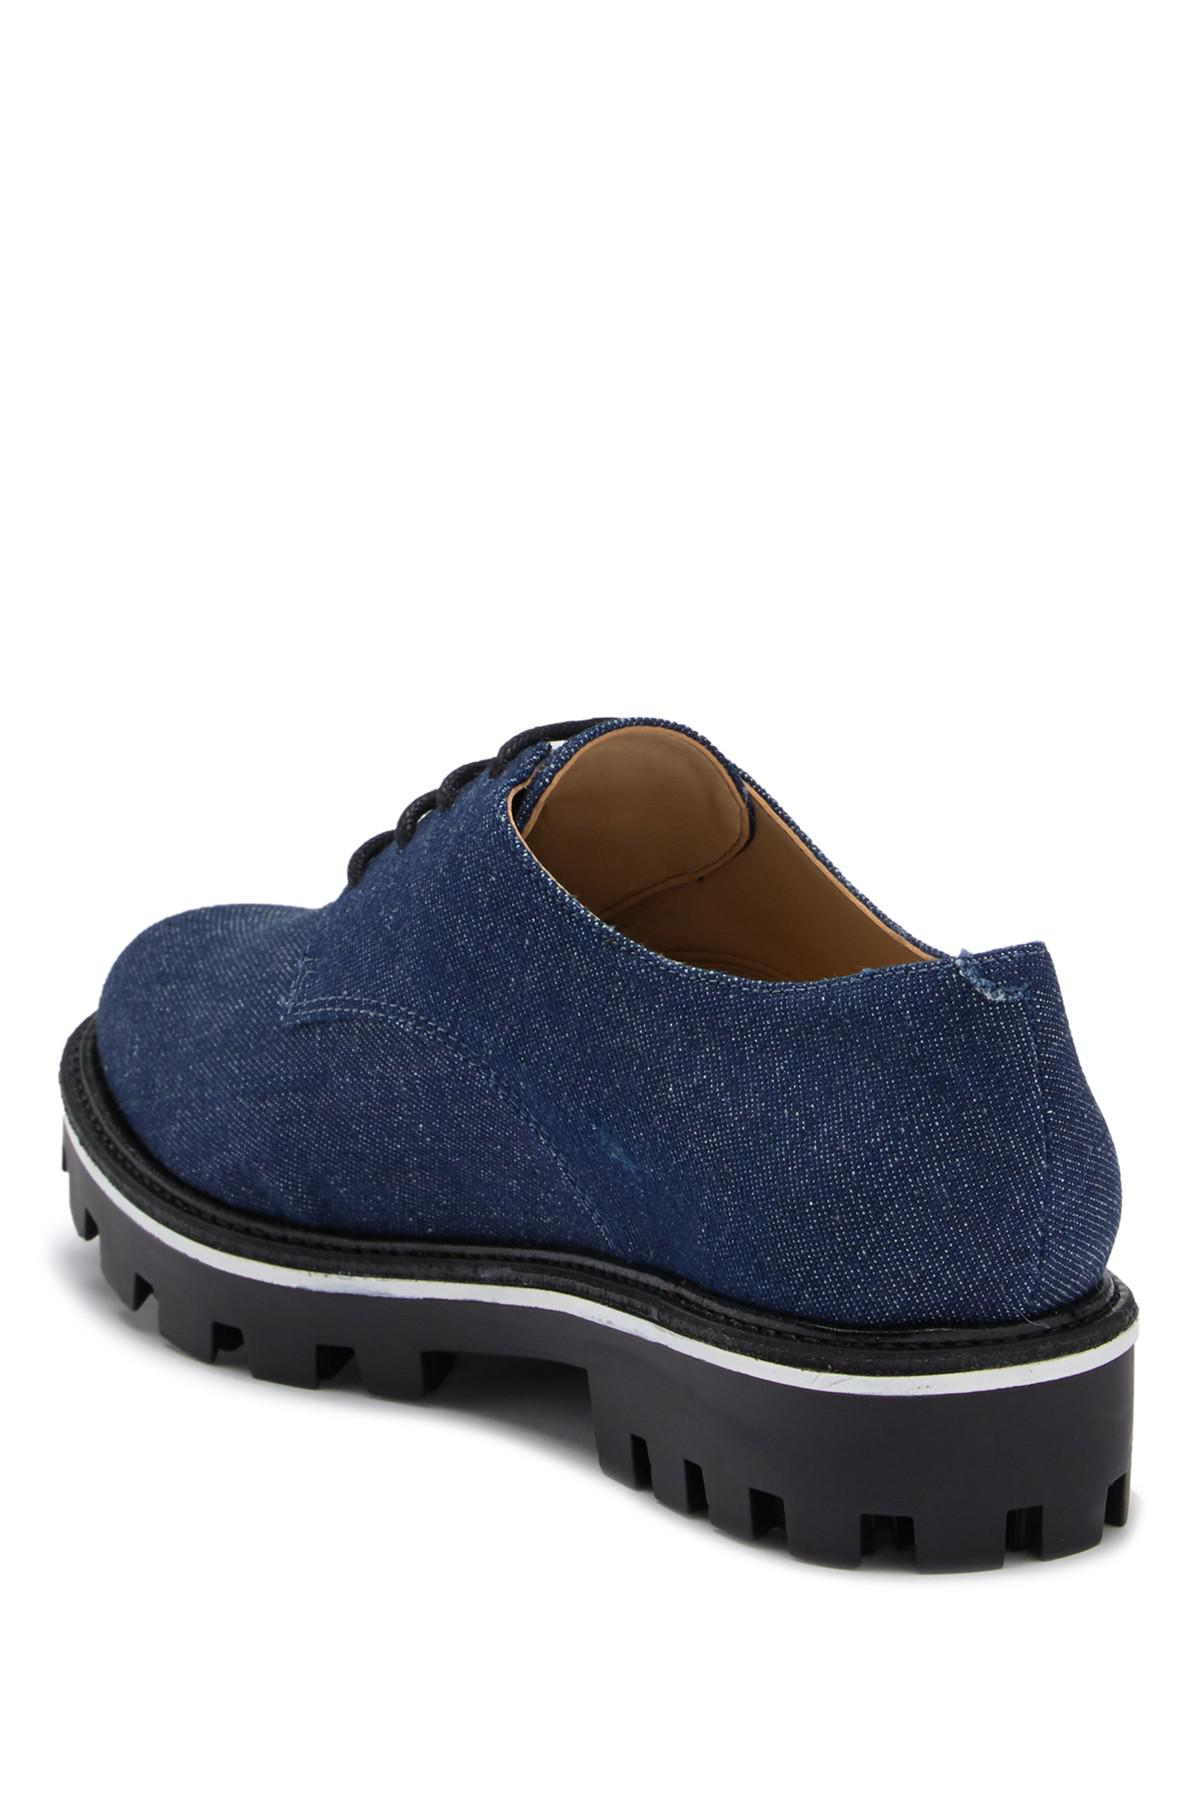 2b0374dc22b Lyst - Schutz Luppa Denim Oxford in Blue